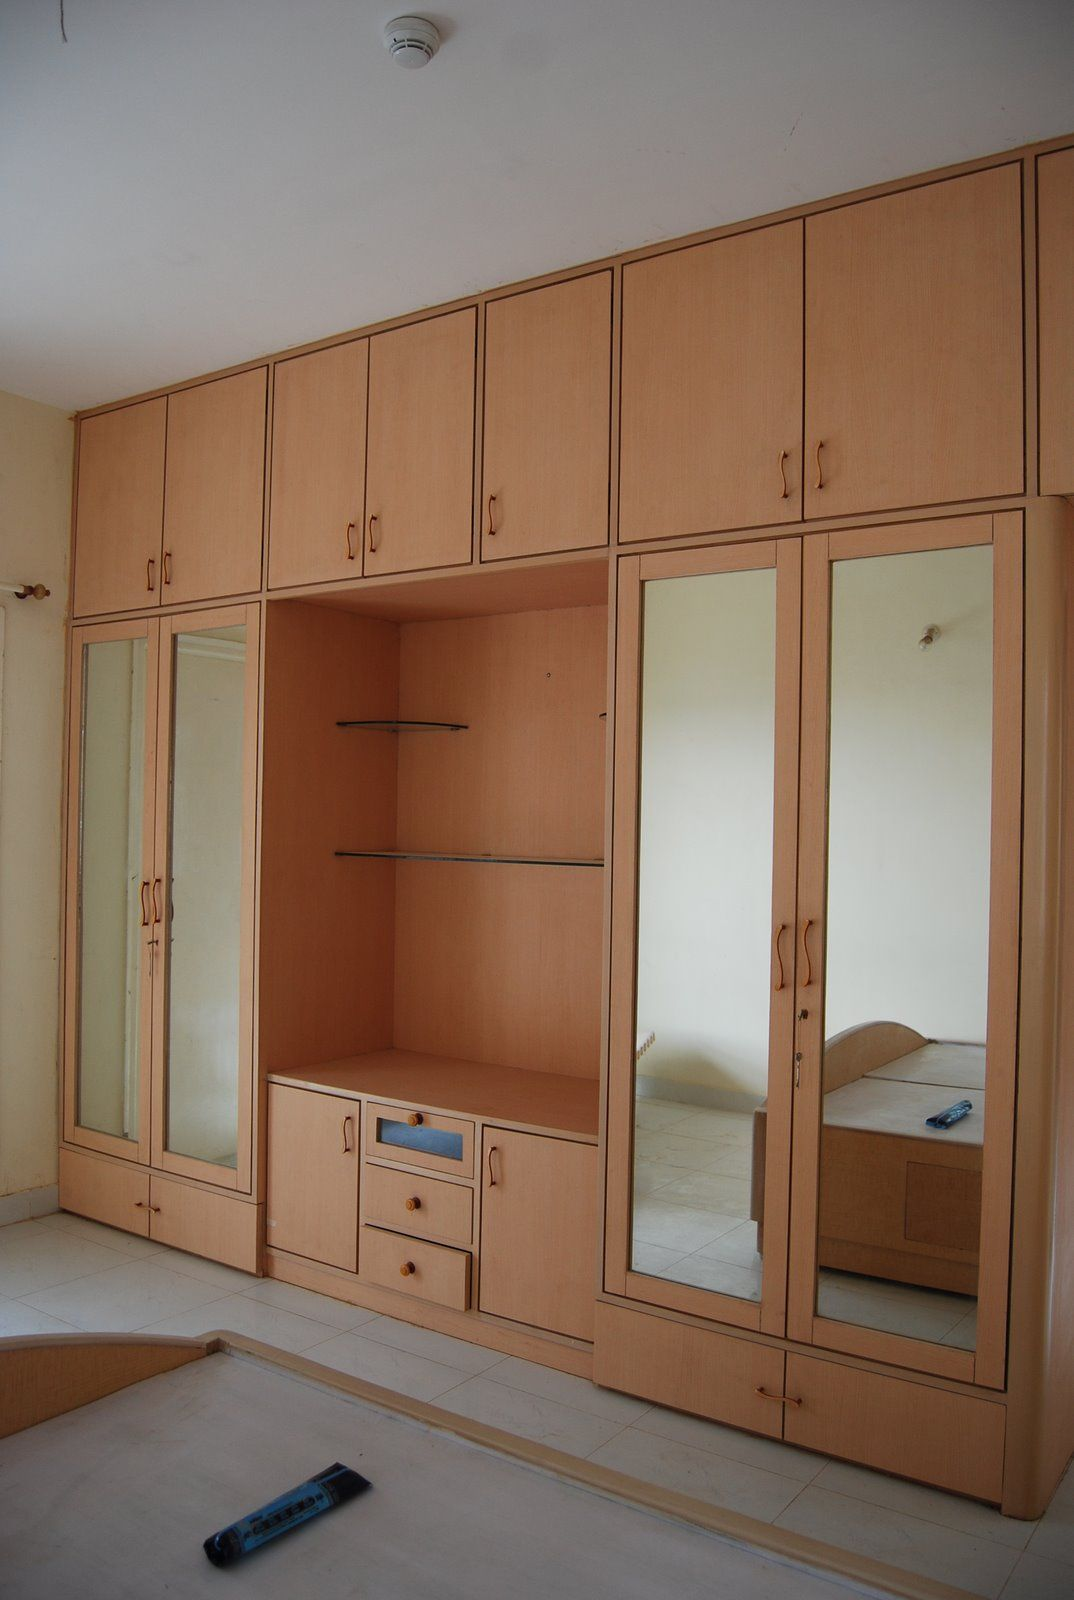 Modern Closet Cabinet Design bedroom wardrobe design playwood wadrobe with cabinets also